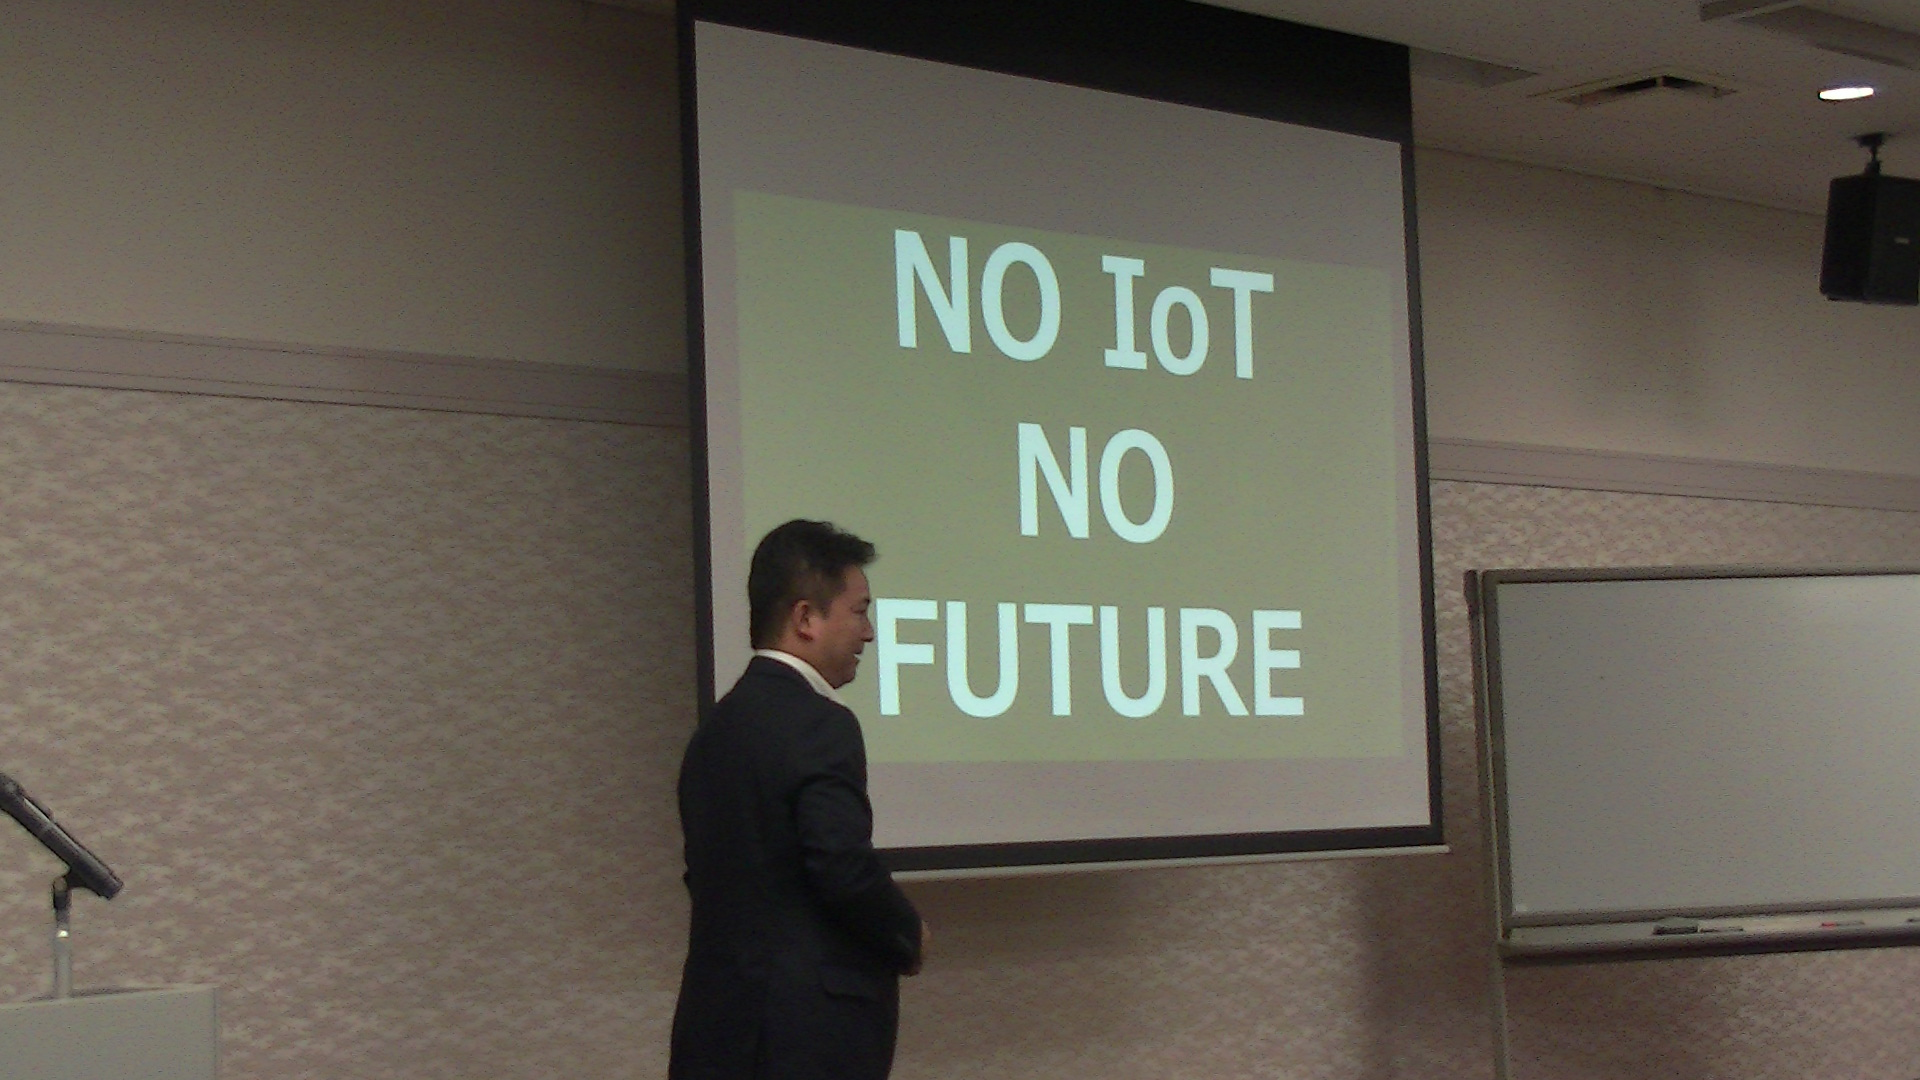 NO IoT NO FUTURE